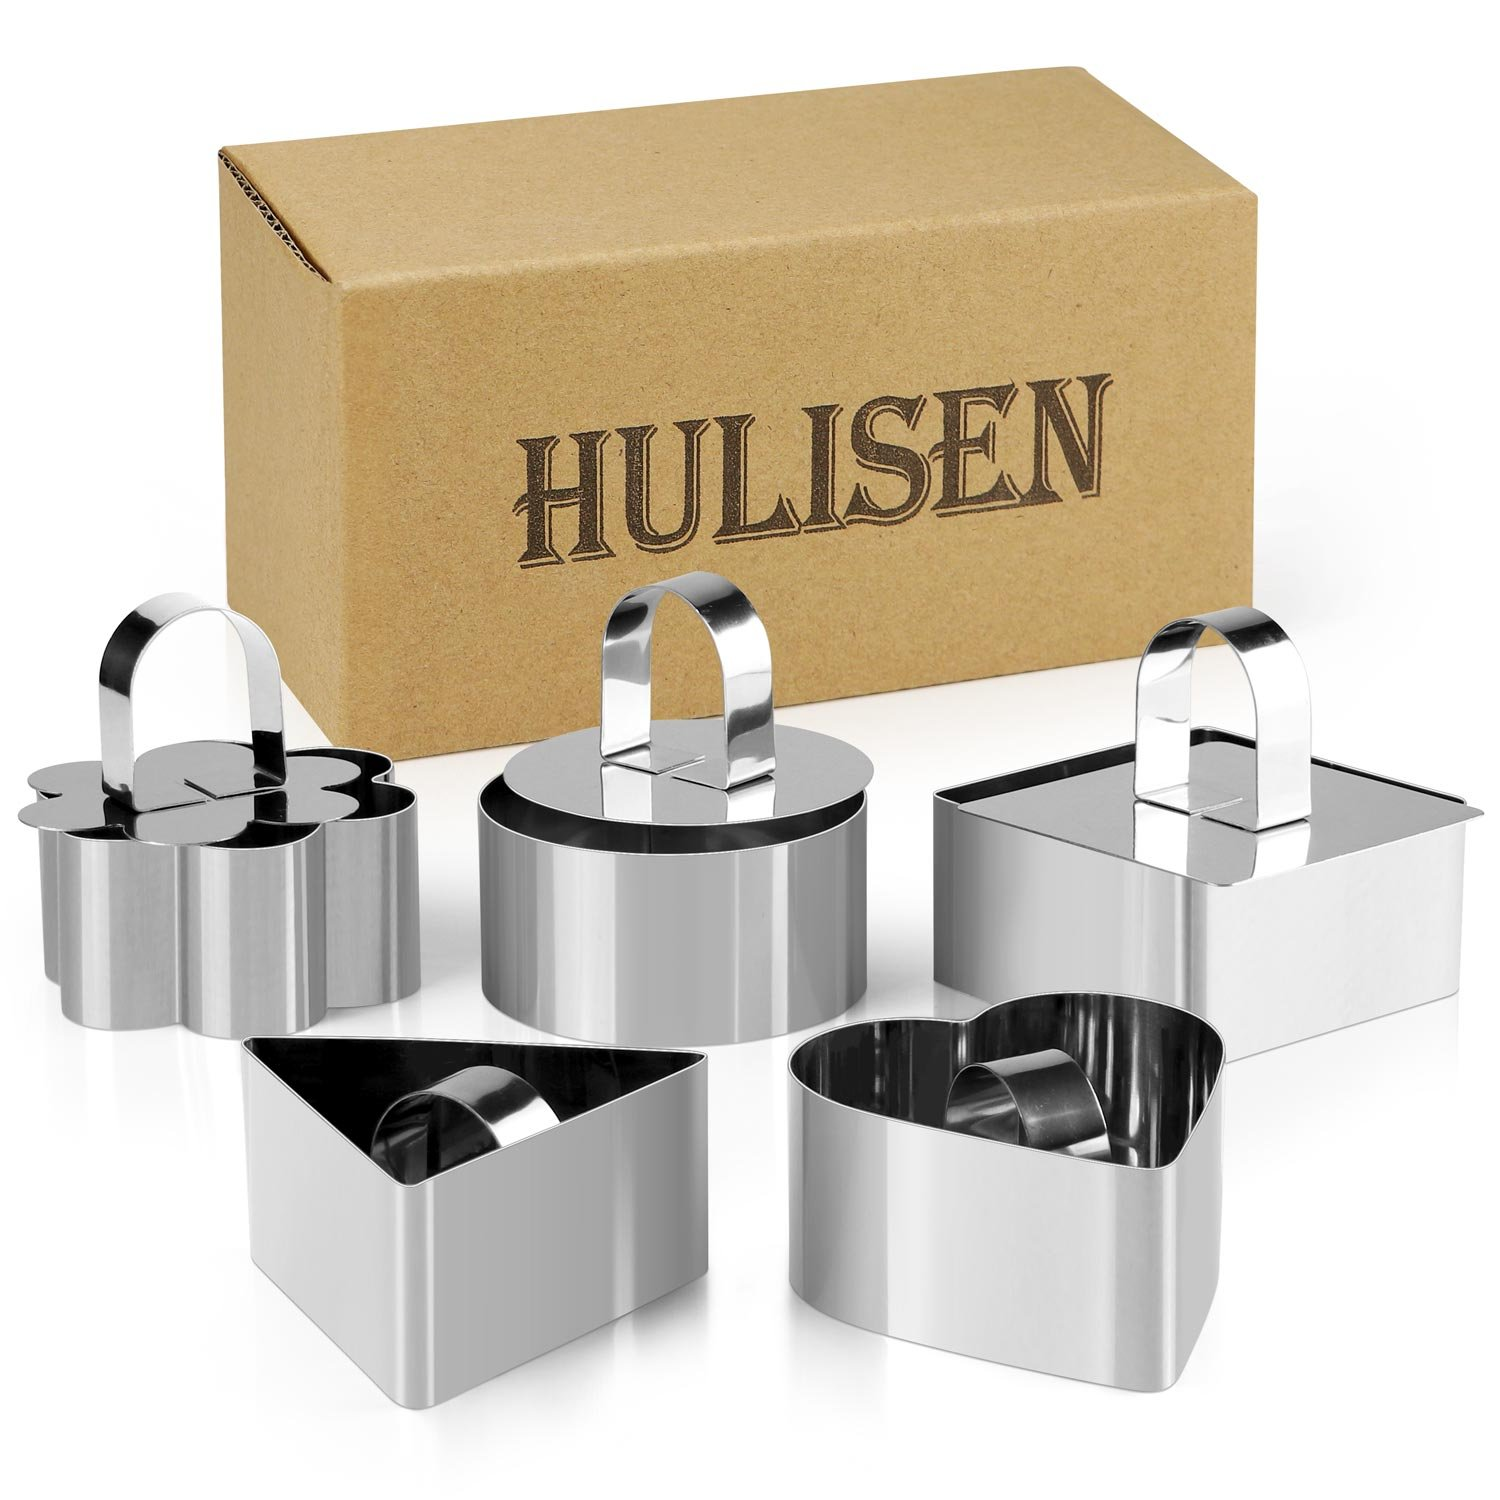 10 Pcs/Set Stainless Steel Cake Ring, HULISEN 3 x 3 inch Square Dessert Mousse Mold with Pusher & Lifter Cooking Rings by HULISEN (Image #1)